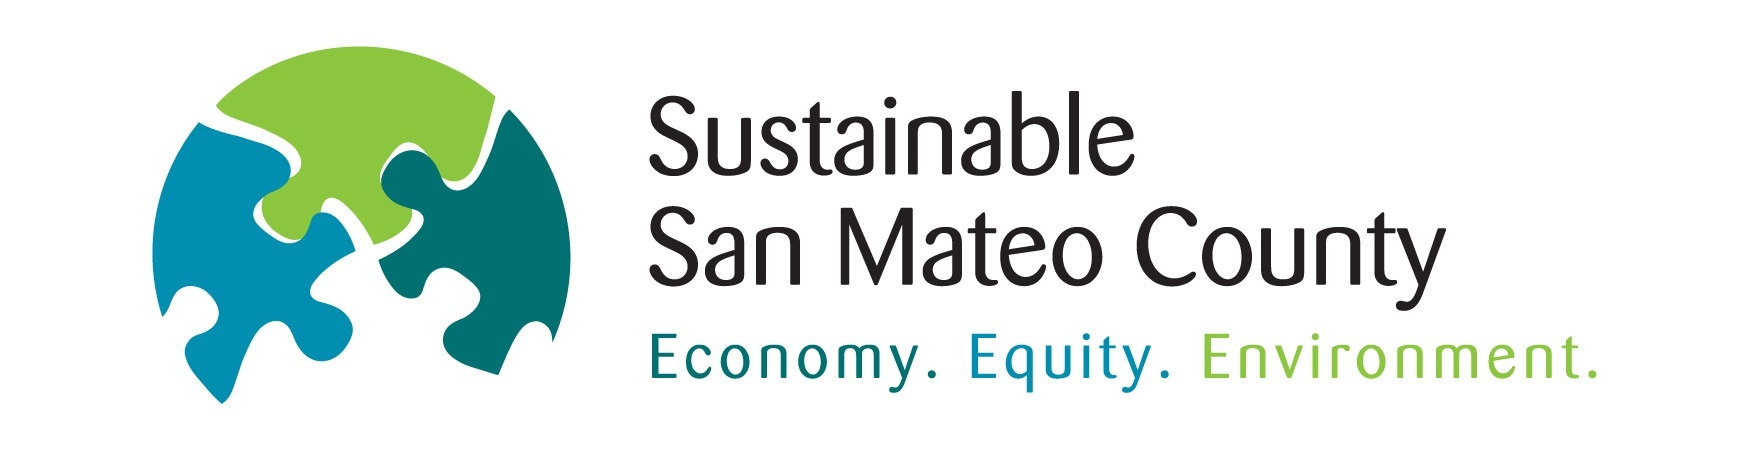 Sustainable San Mateo County (SSMC)